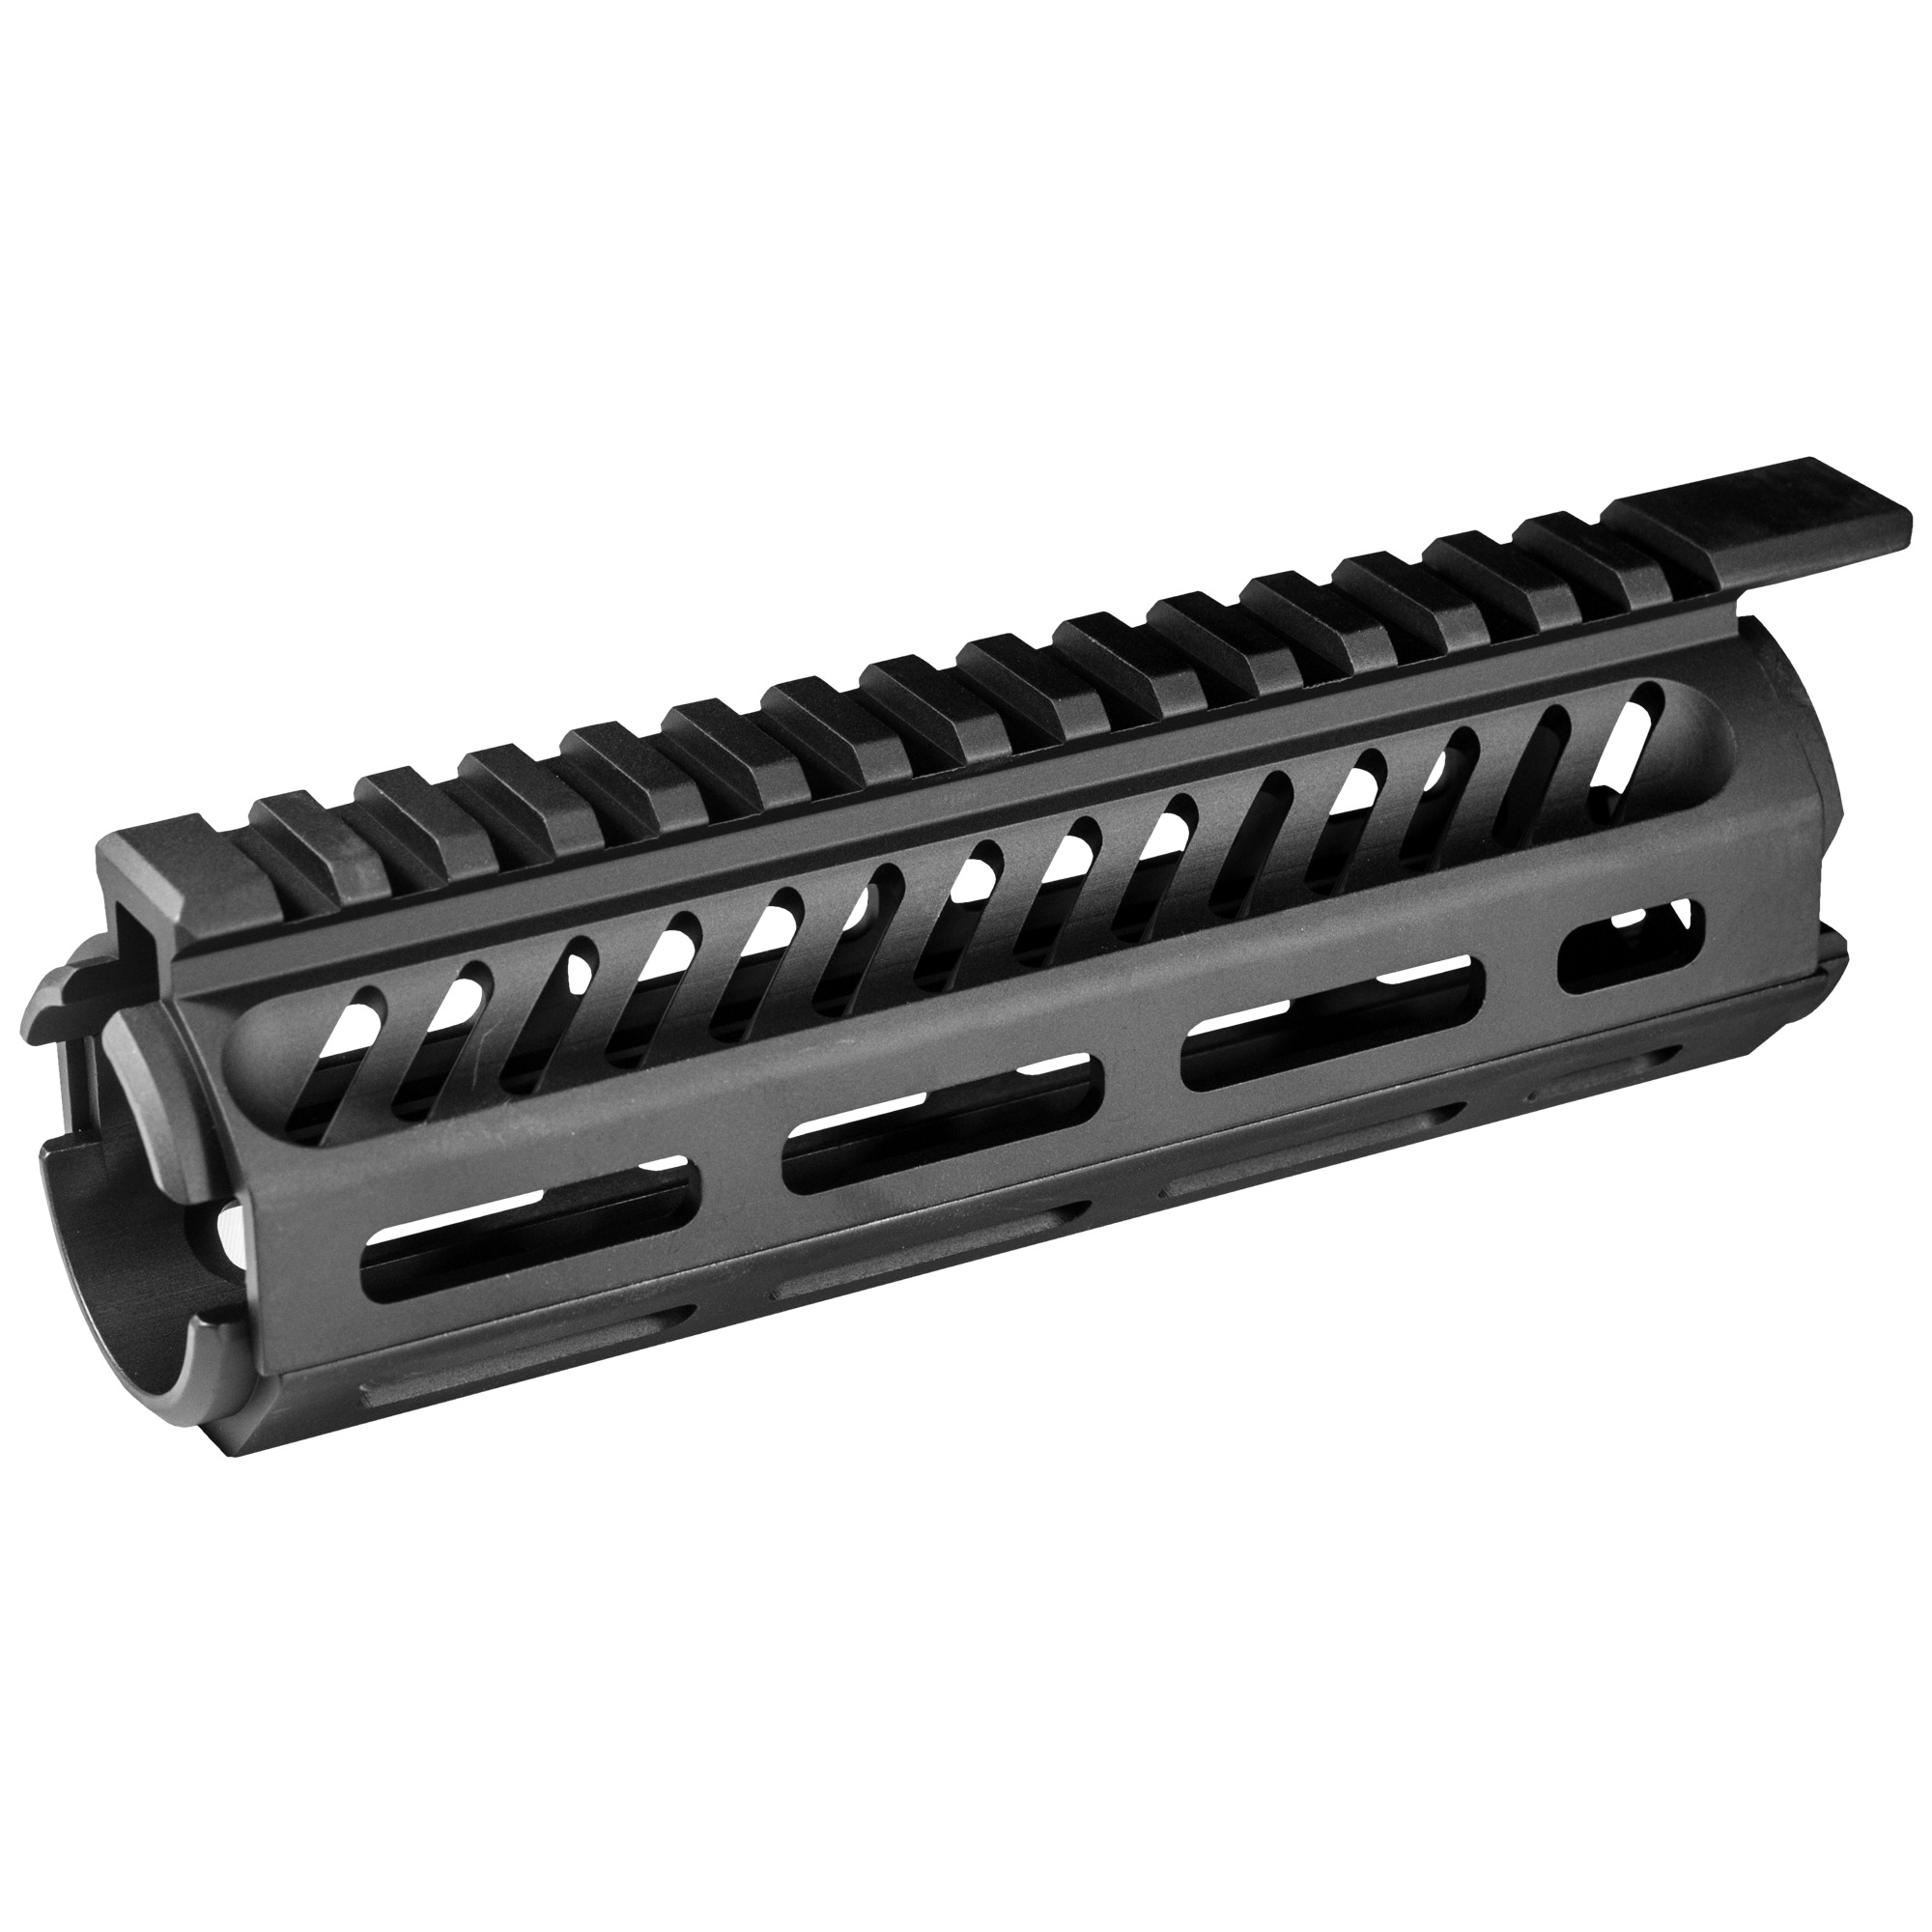 """The Tekko Metal AR-15 Carbine M-LOK(TM) 7"""" Rail System replaces the plastic carbine factory handguard in minutes and requires no gunsmithing or special installation tools. Drop in"""" screw less"""" installation means no permanent alterations need be made to the rifle. The unit is held in place by the Delta ring and handguard cap. M-LOK(TM) attachment system provides secure mounting for M-LOK(TM) accessories such as MIL-STD 1913 Picatinny Rail attachments vertical grips"""" lights"""" lasers"""" bipods and other rail mounted kit. M-LOK(TM) system allows for universal modularity between numerous manufacturers of accessories"""" and accessory rails."""